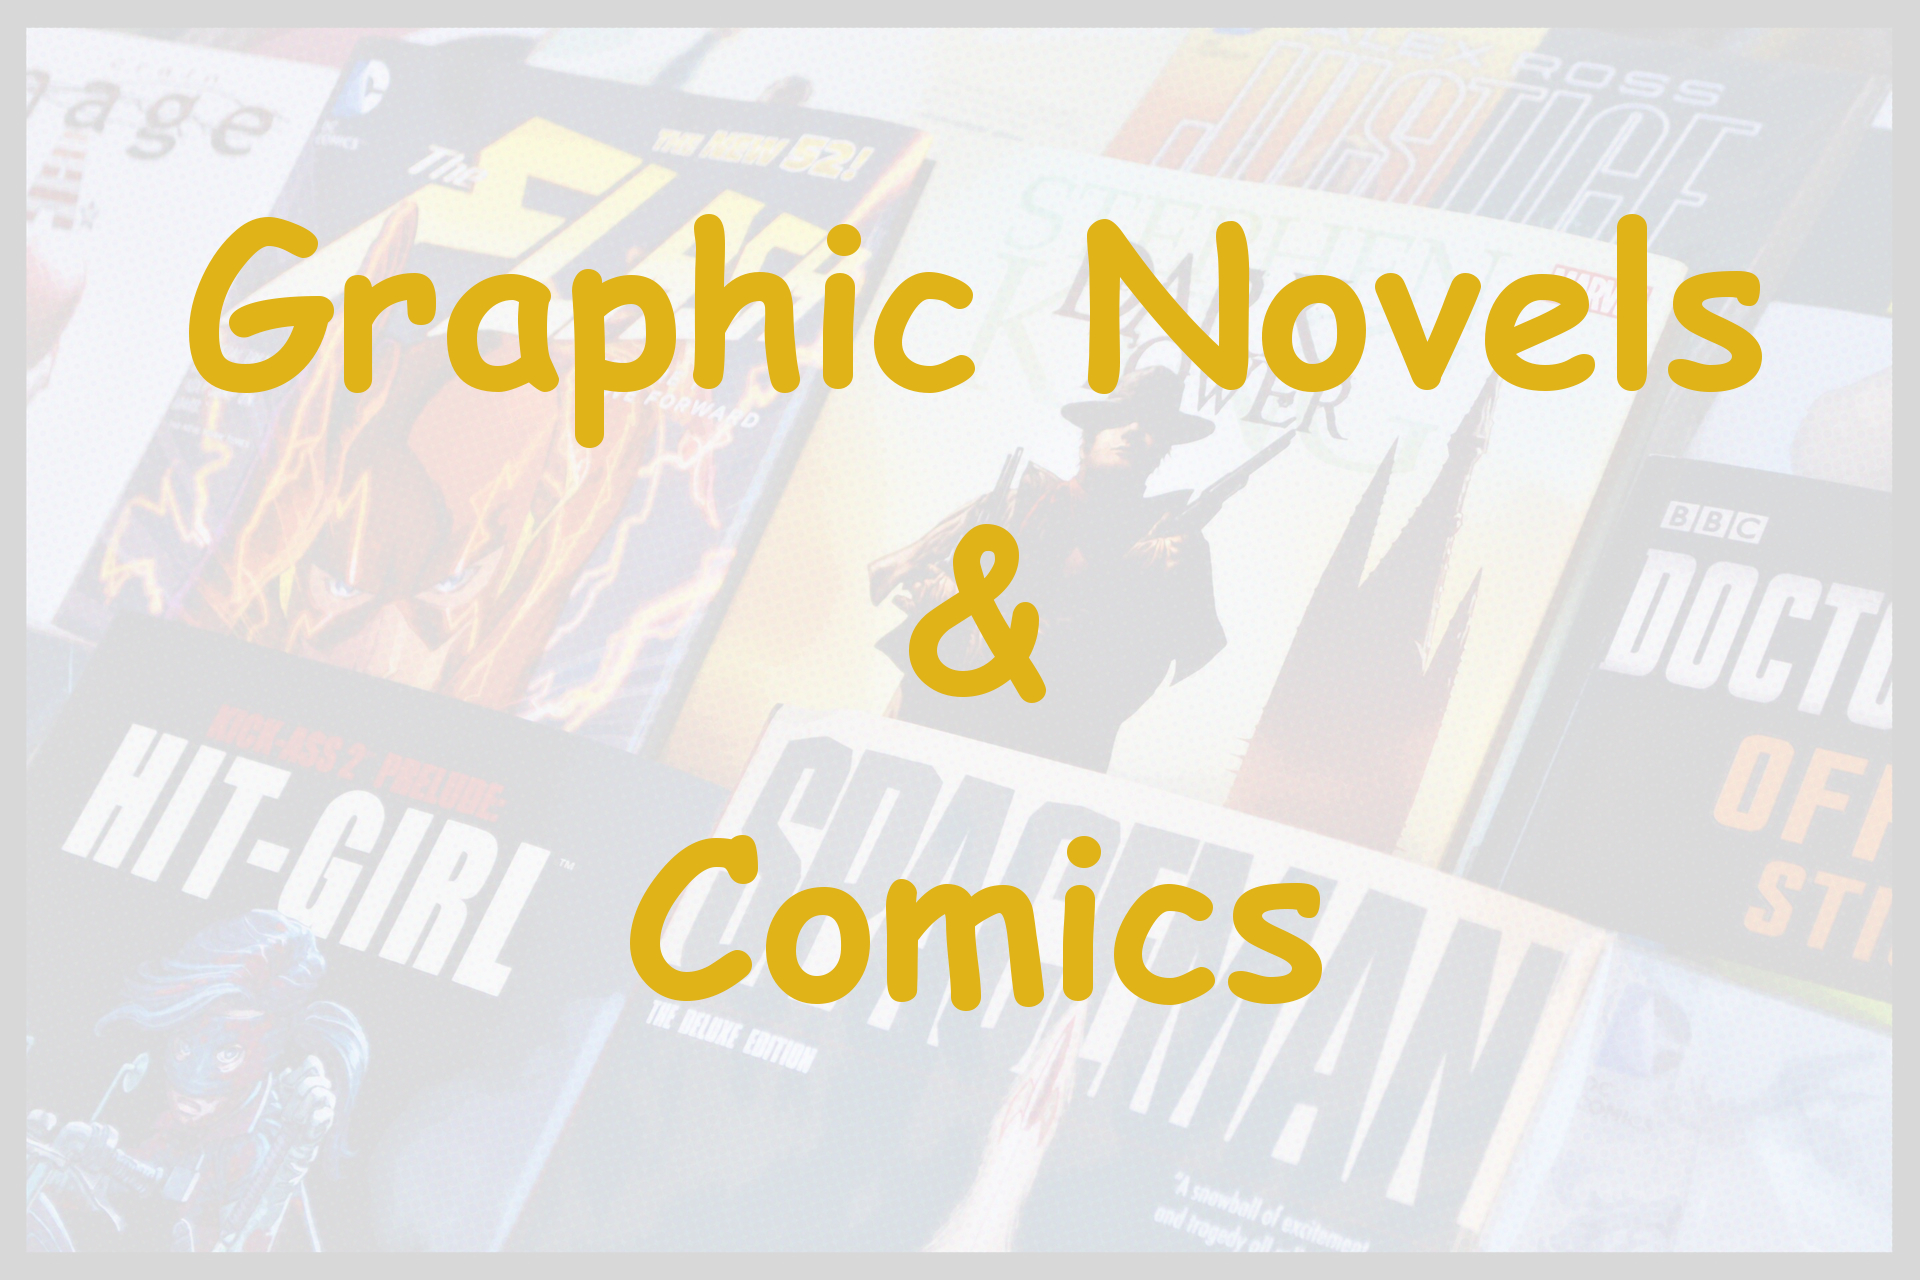 graphic novels comics